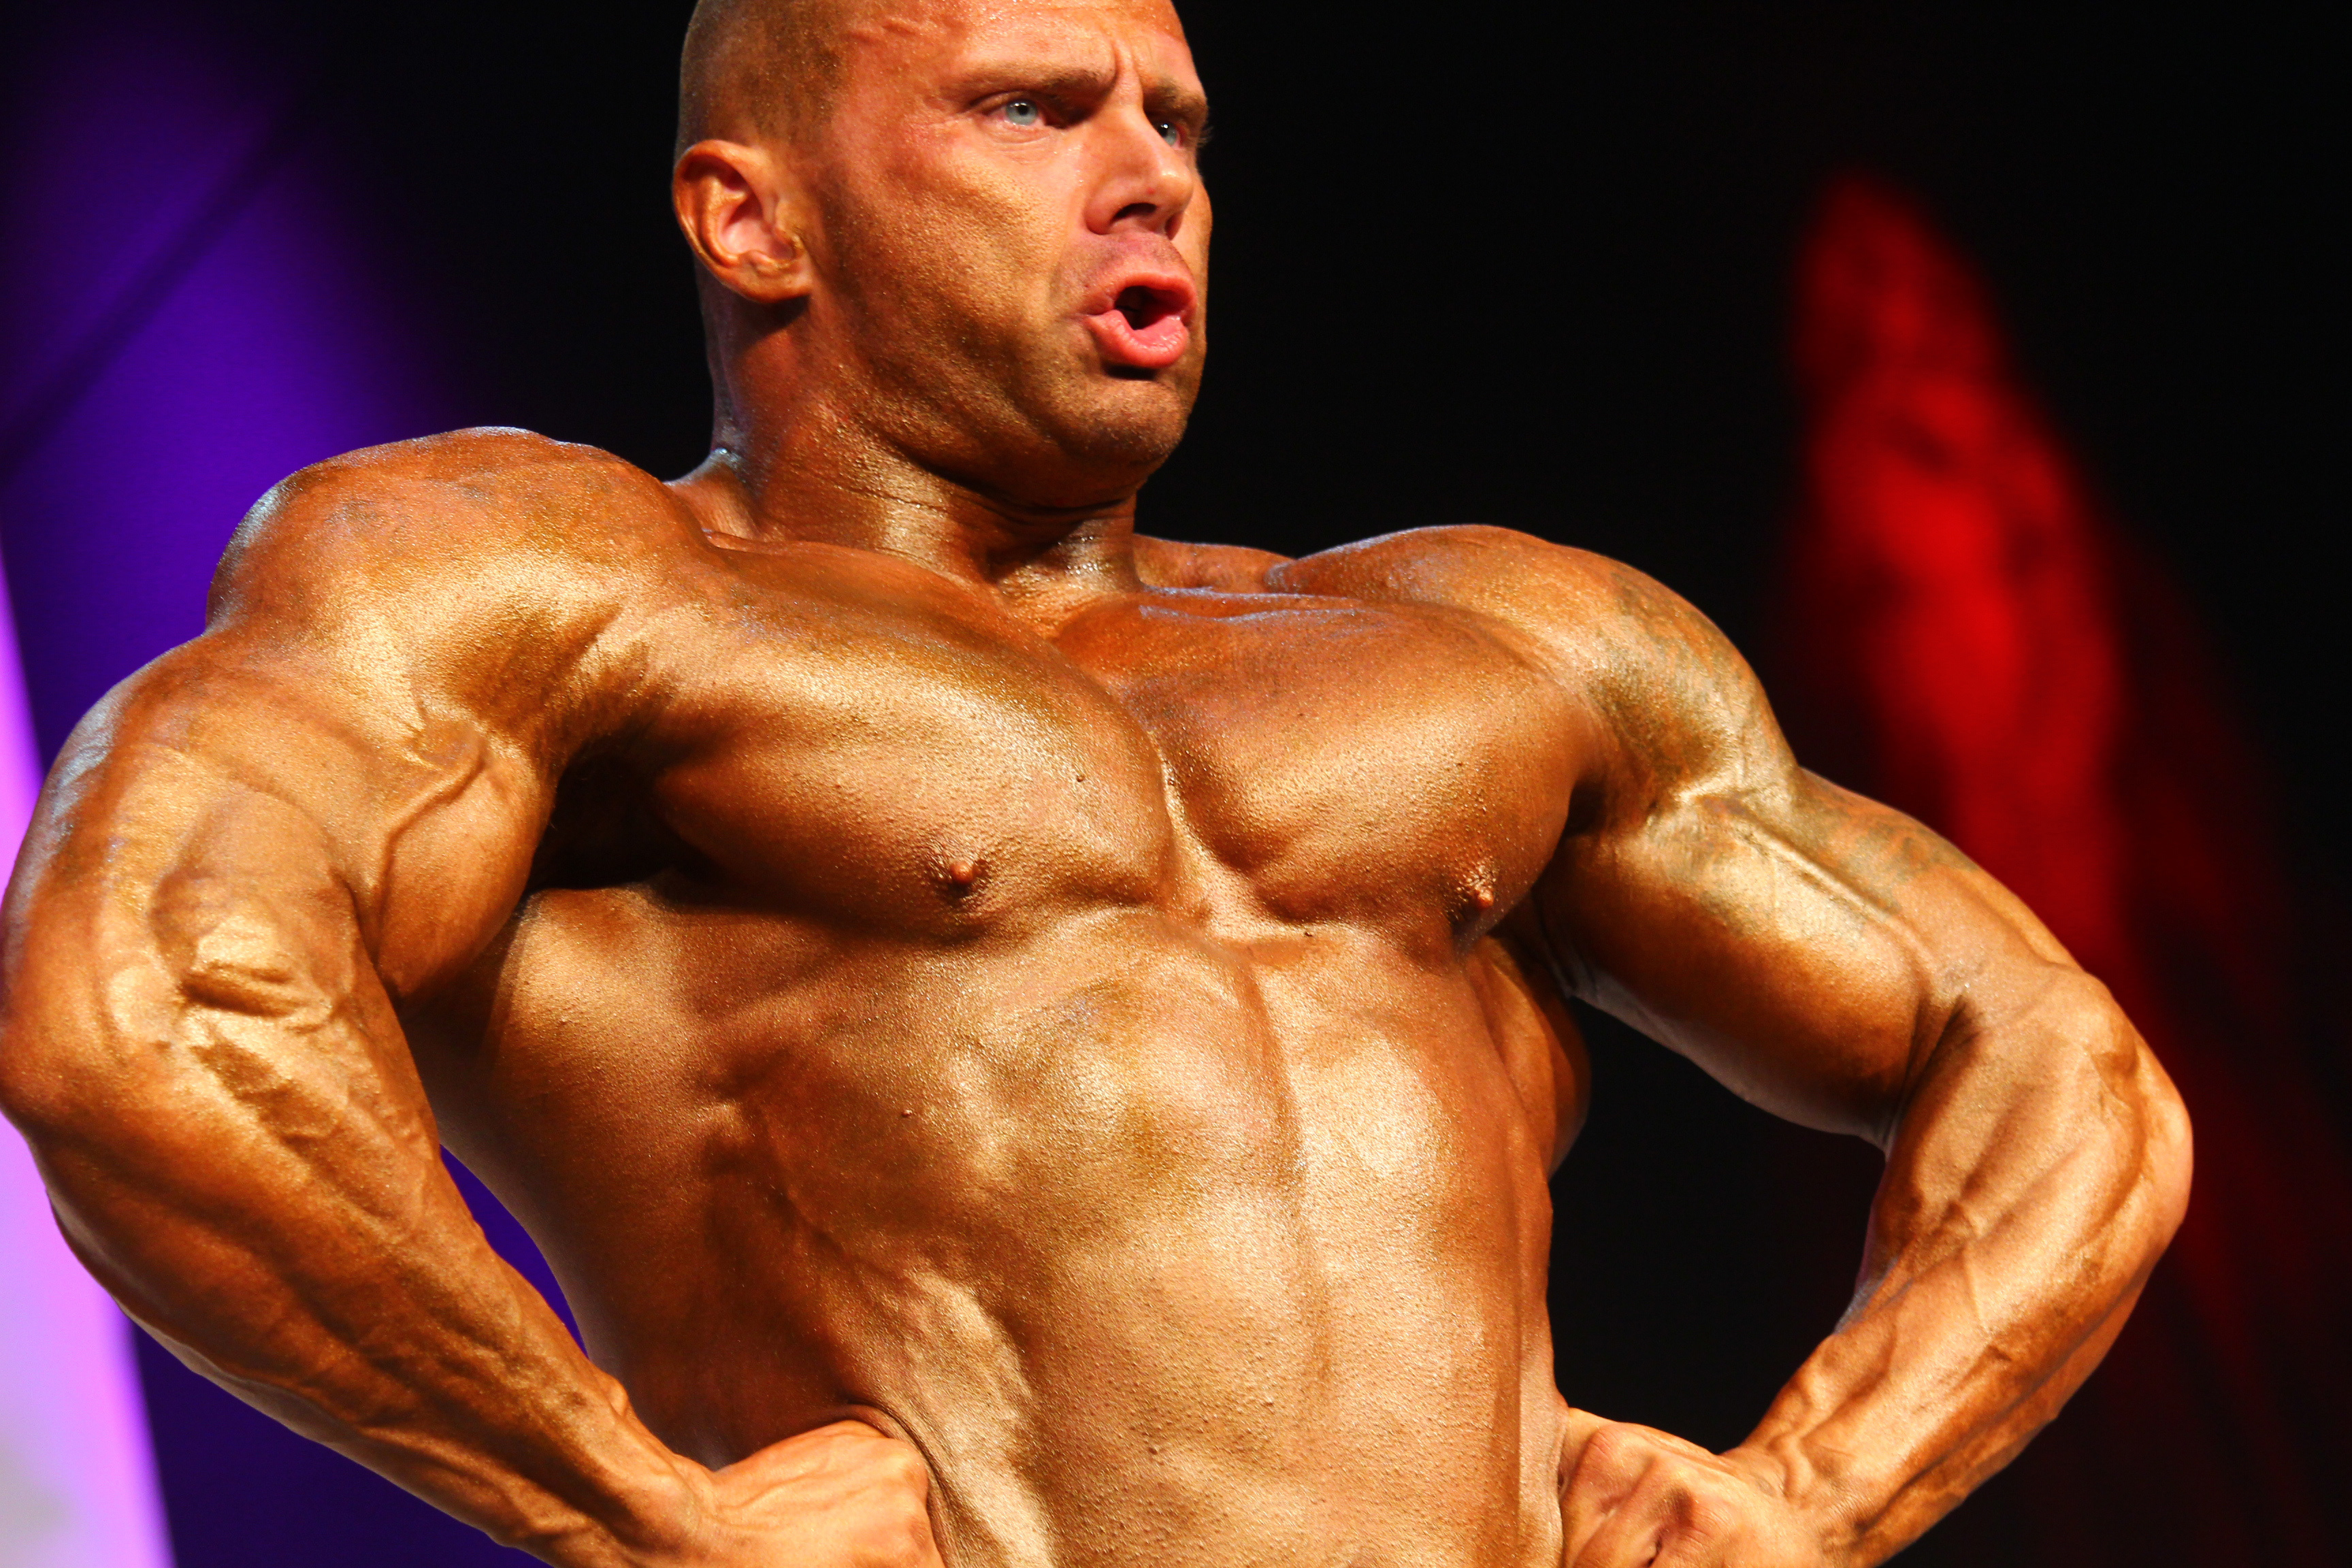 bodybuilder posing in a competition